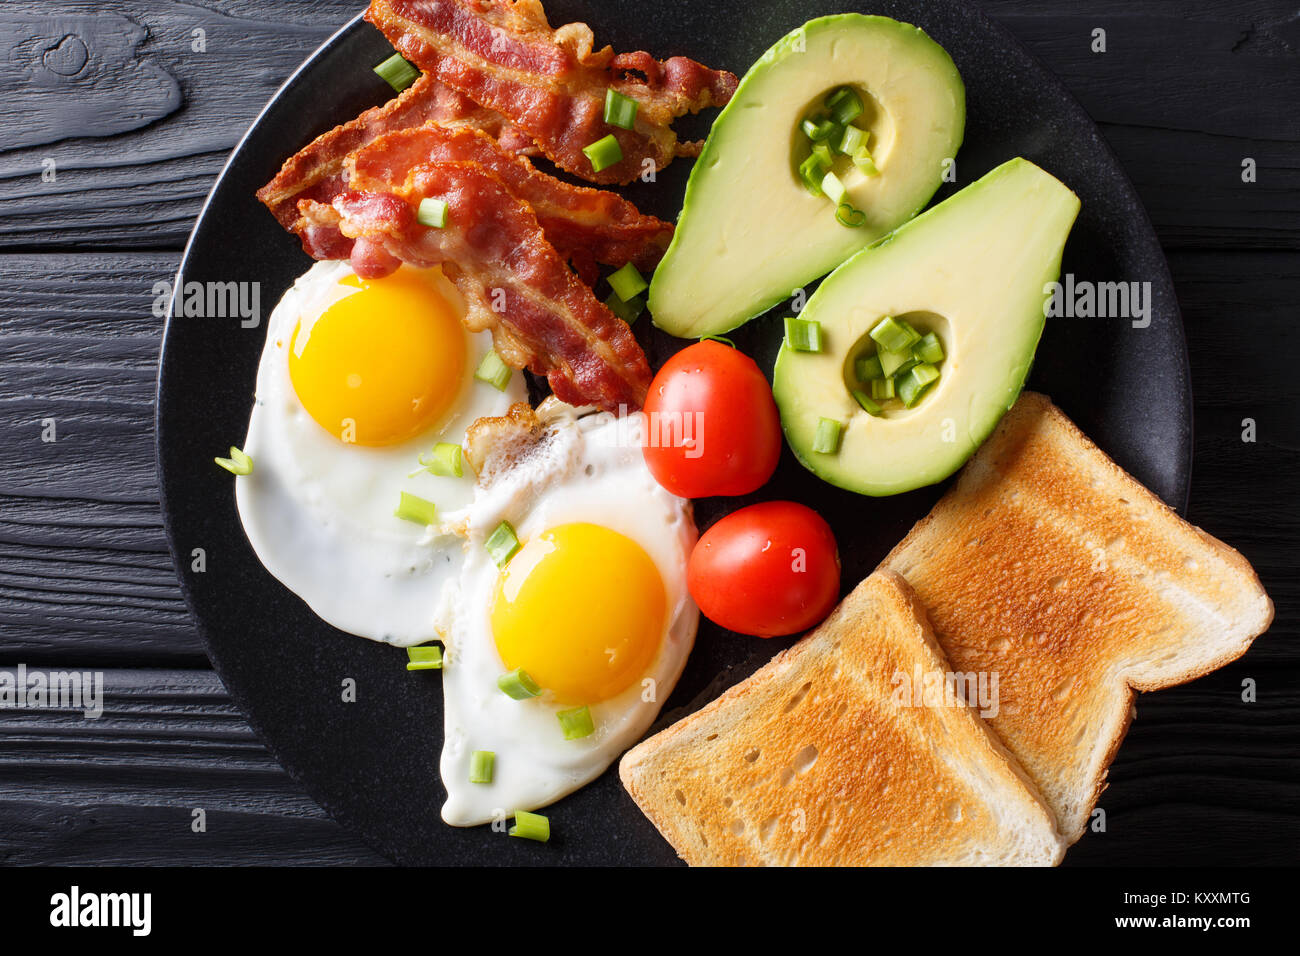 Delicious breakfast of eggs with crispy bacon, avocado, toast and tomatoes close-up on a black plate on the table. Stock Photo